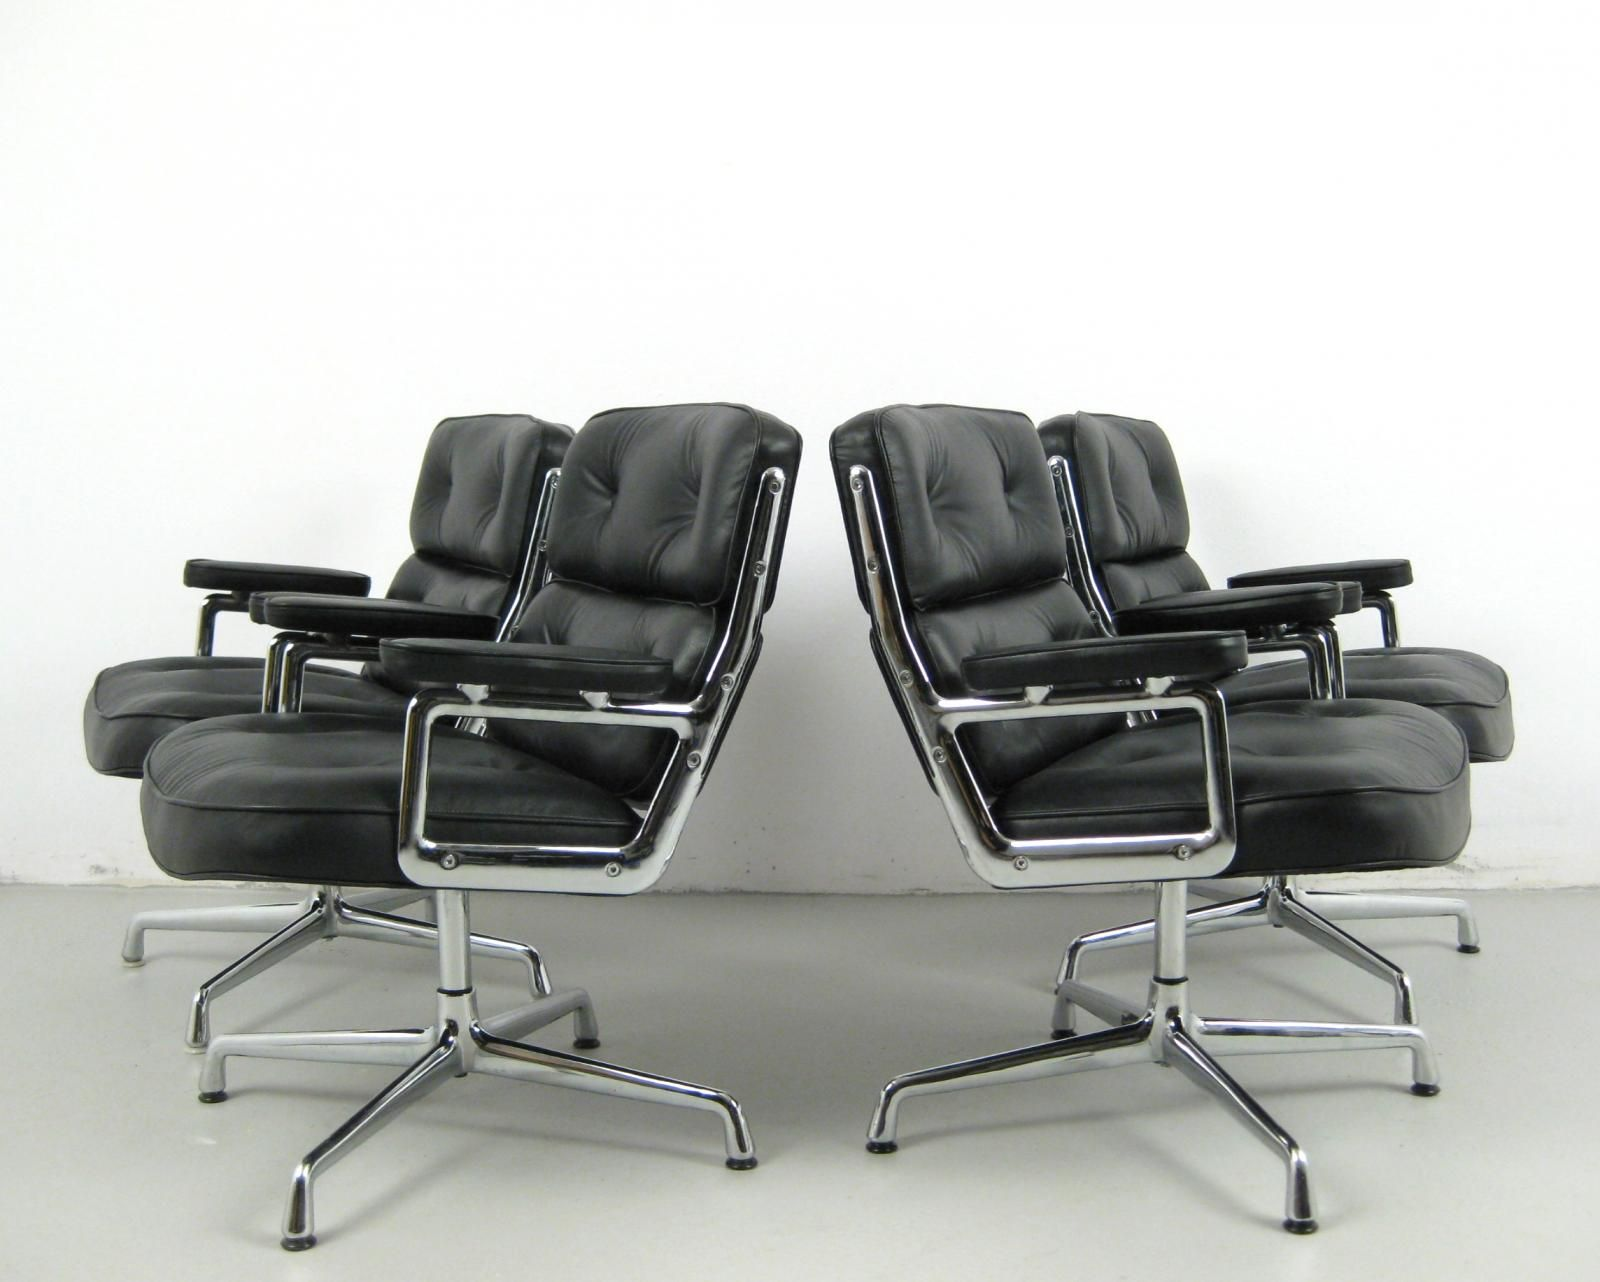 AreaNeo Charles Ray Eames Time Life Lobby chairs Vitra